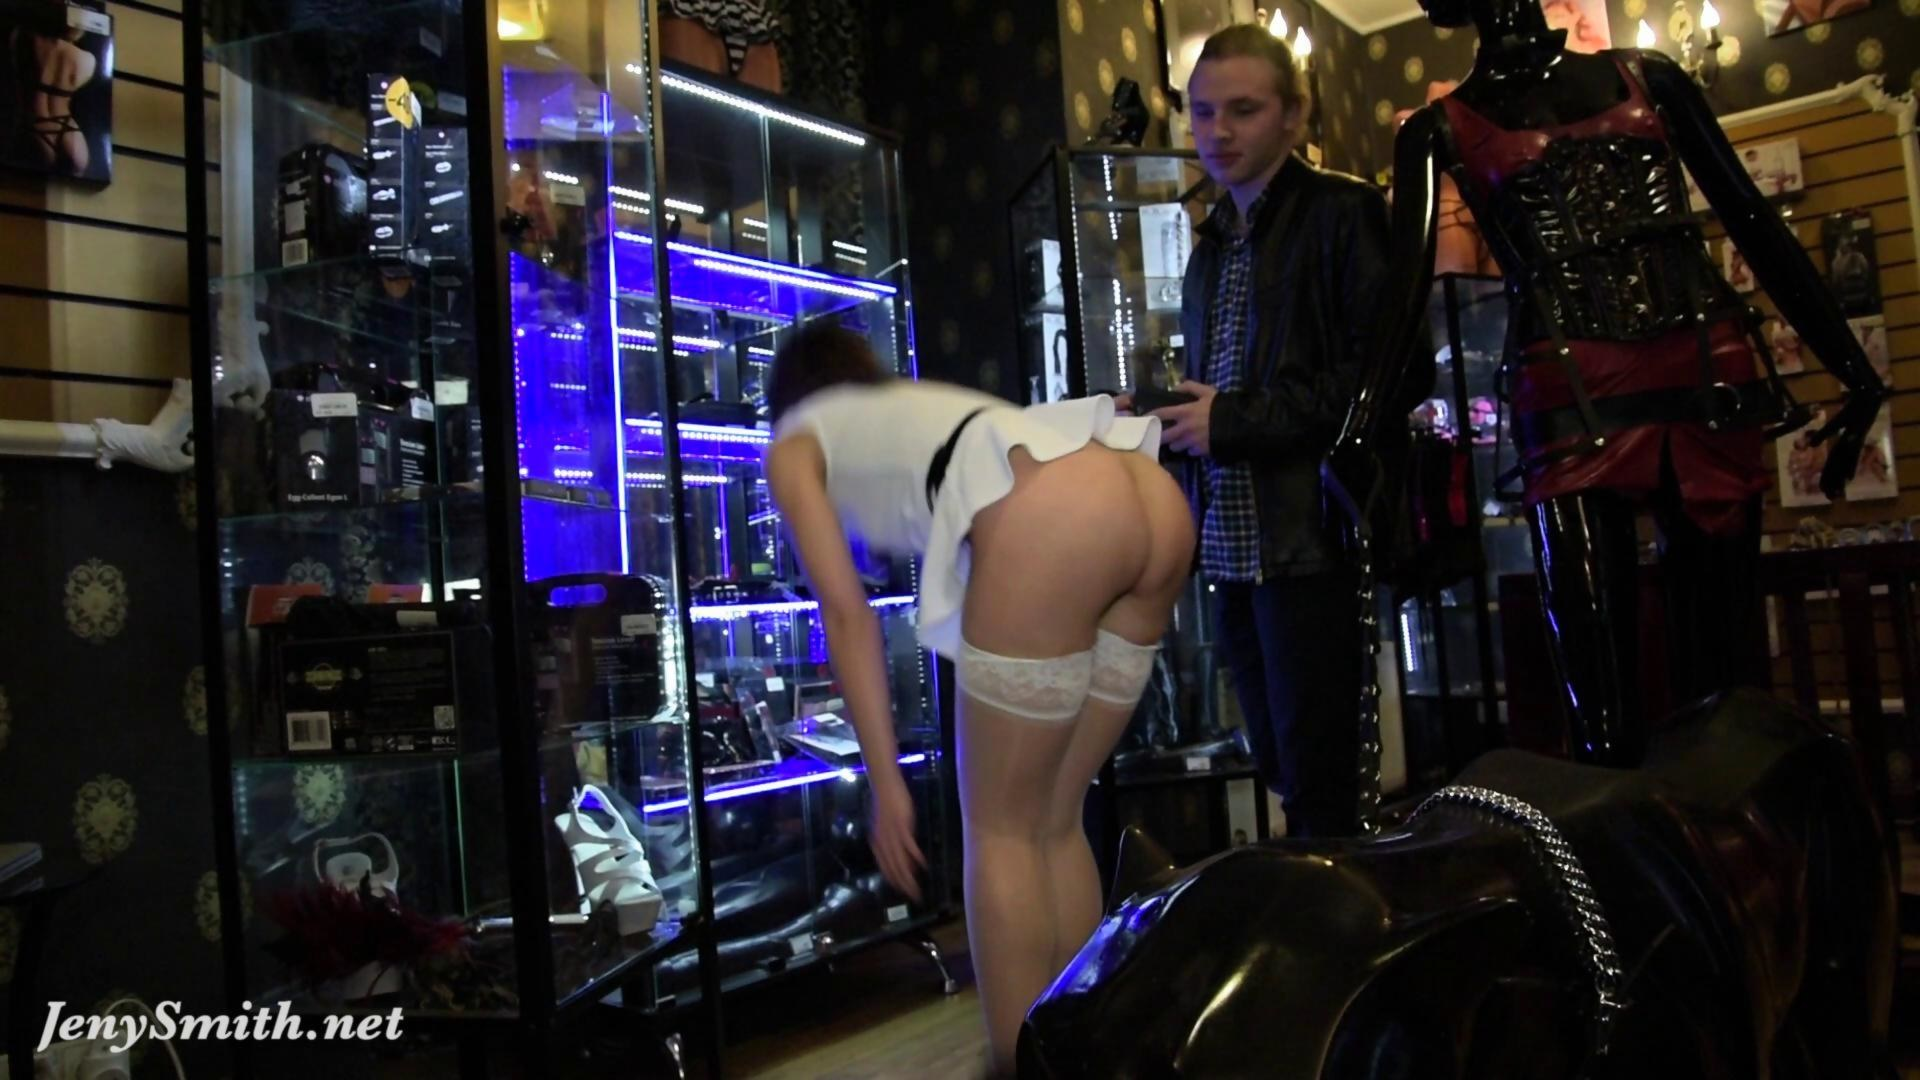 image Jeny smith naked sales girl meet customers in a sex shop